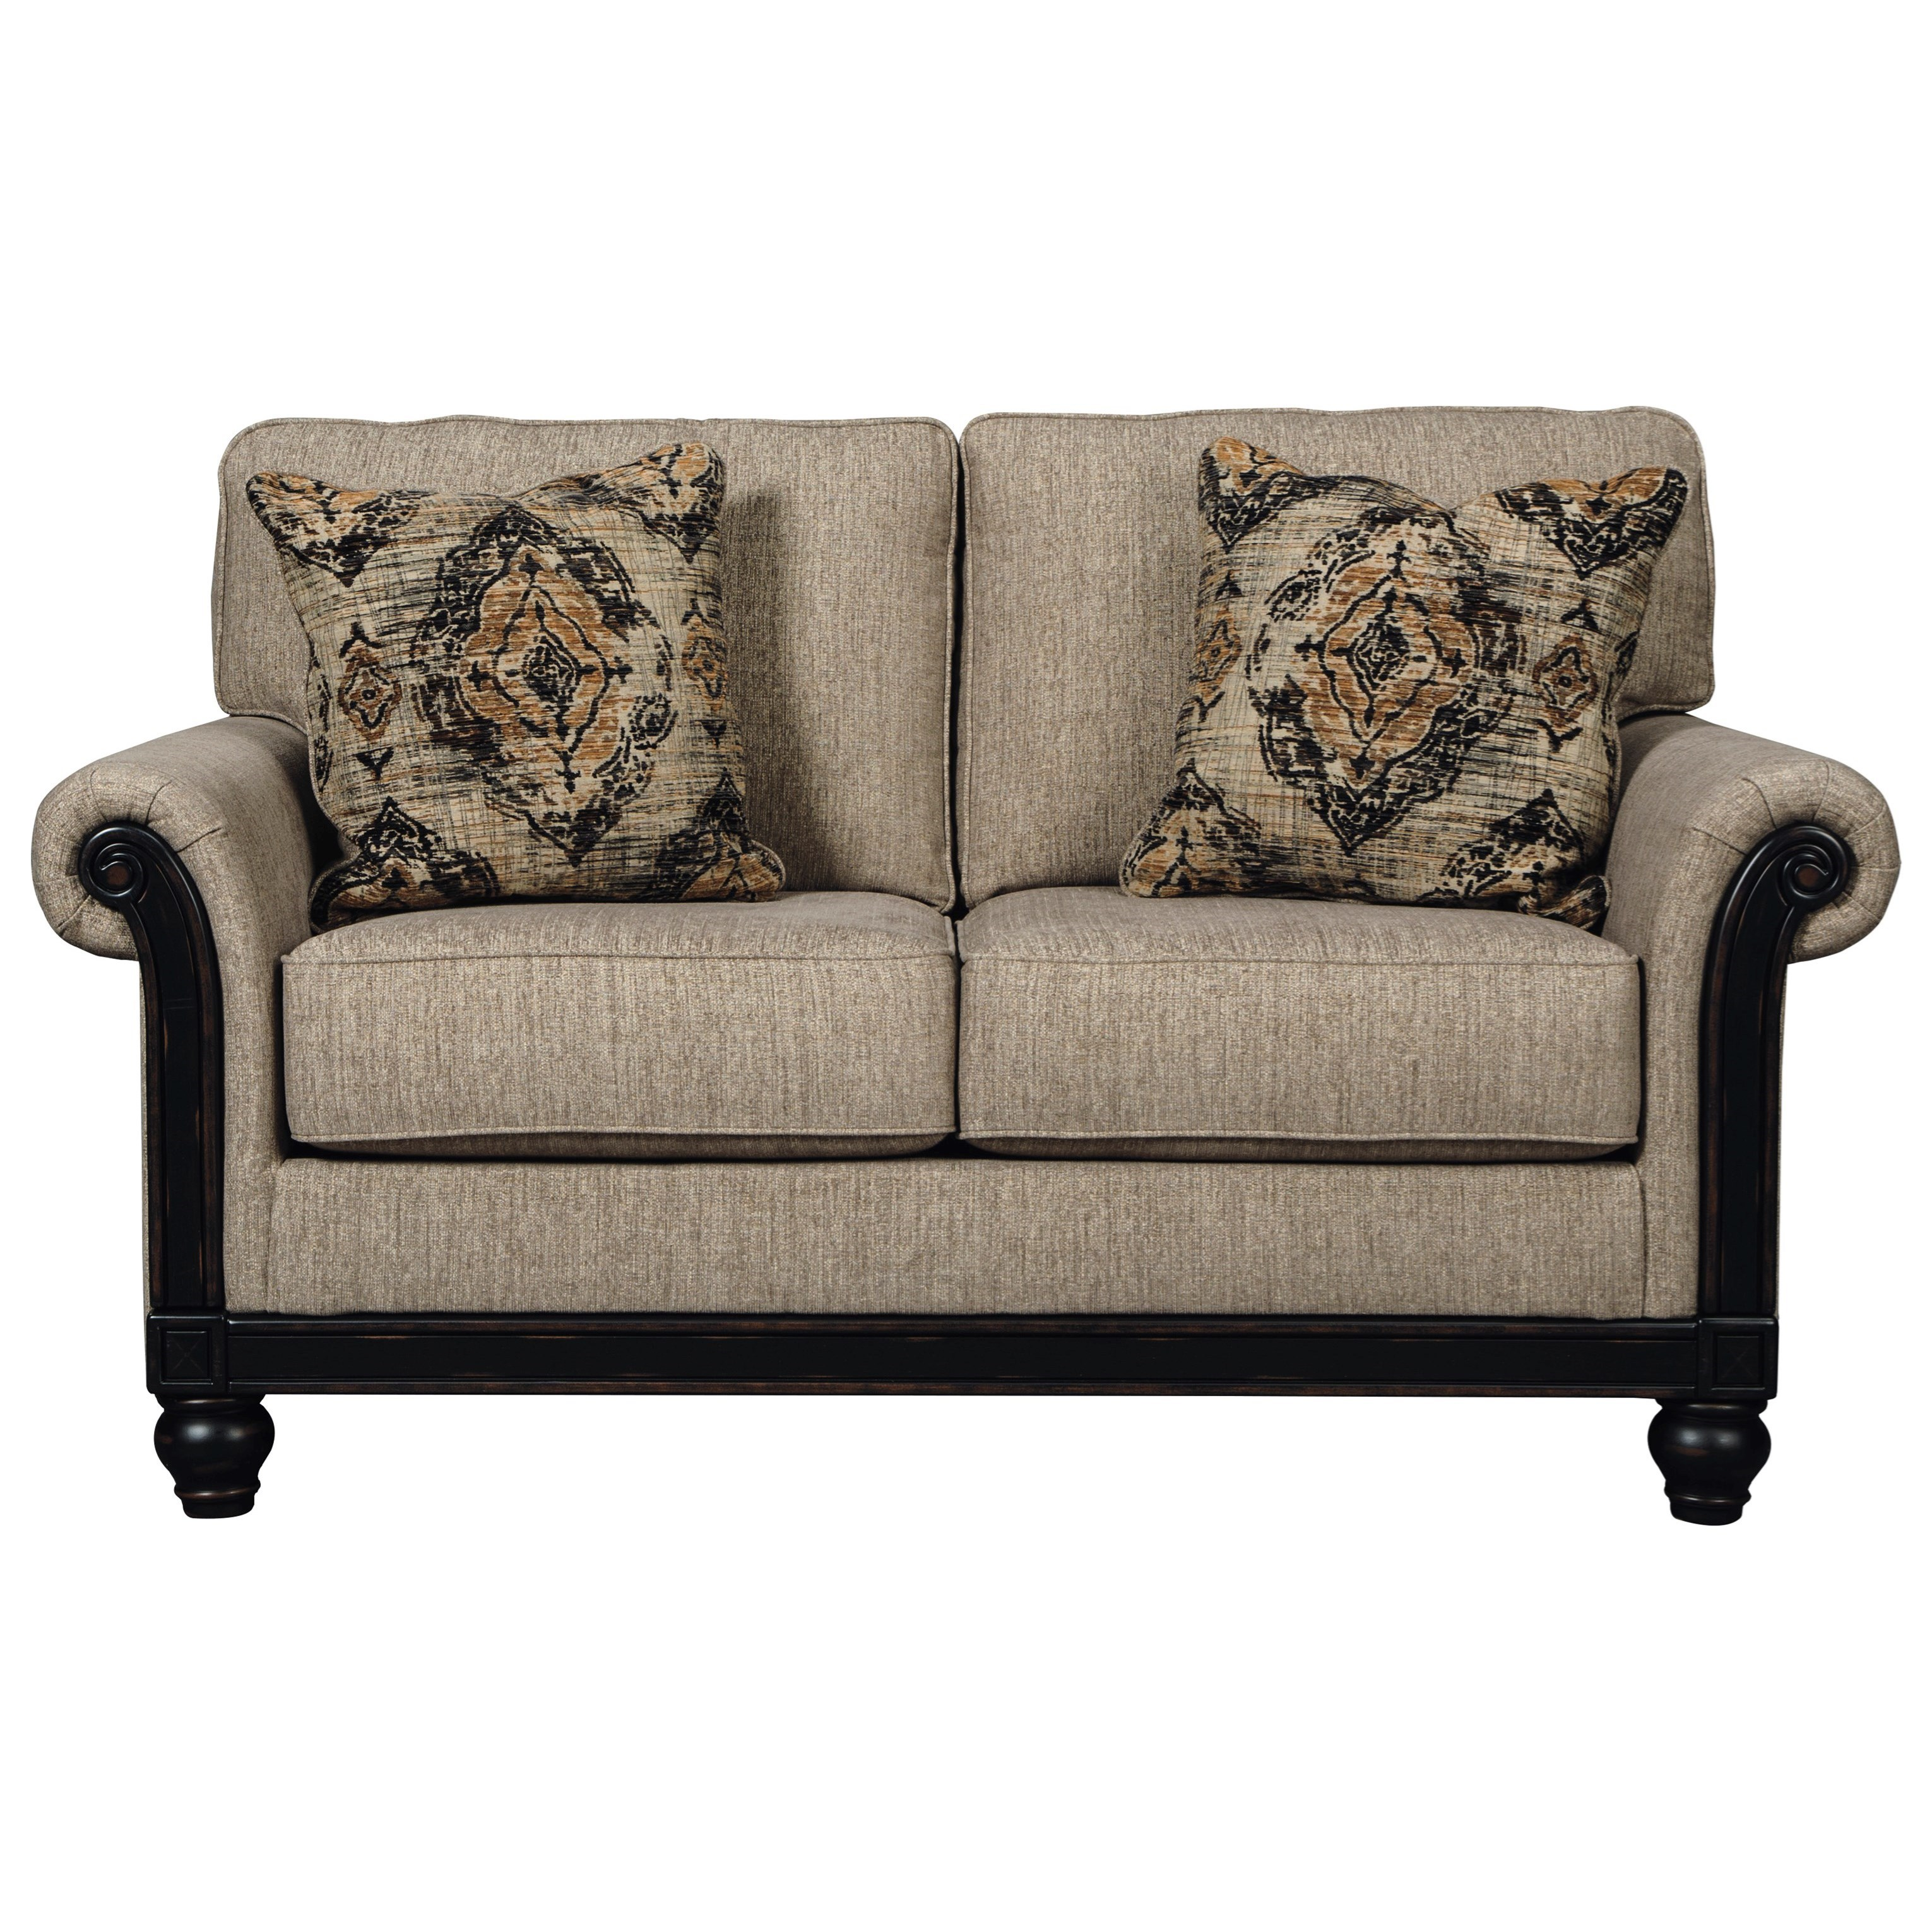 Signature Design by Ashley Blackwood Loveseat - Item Number: 3350335